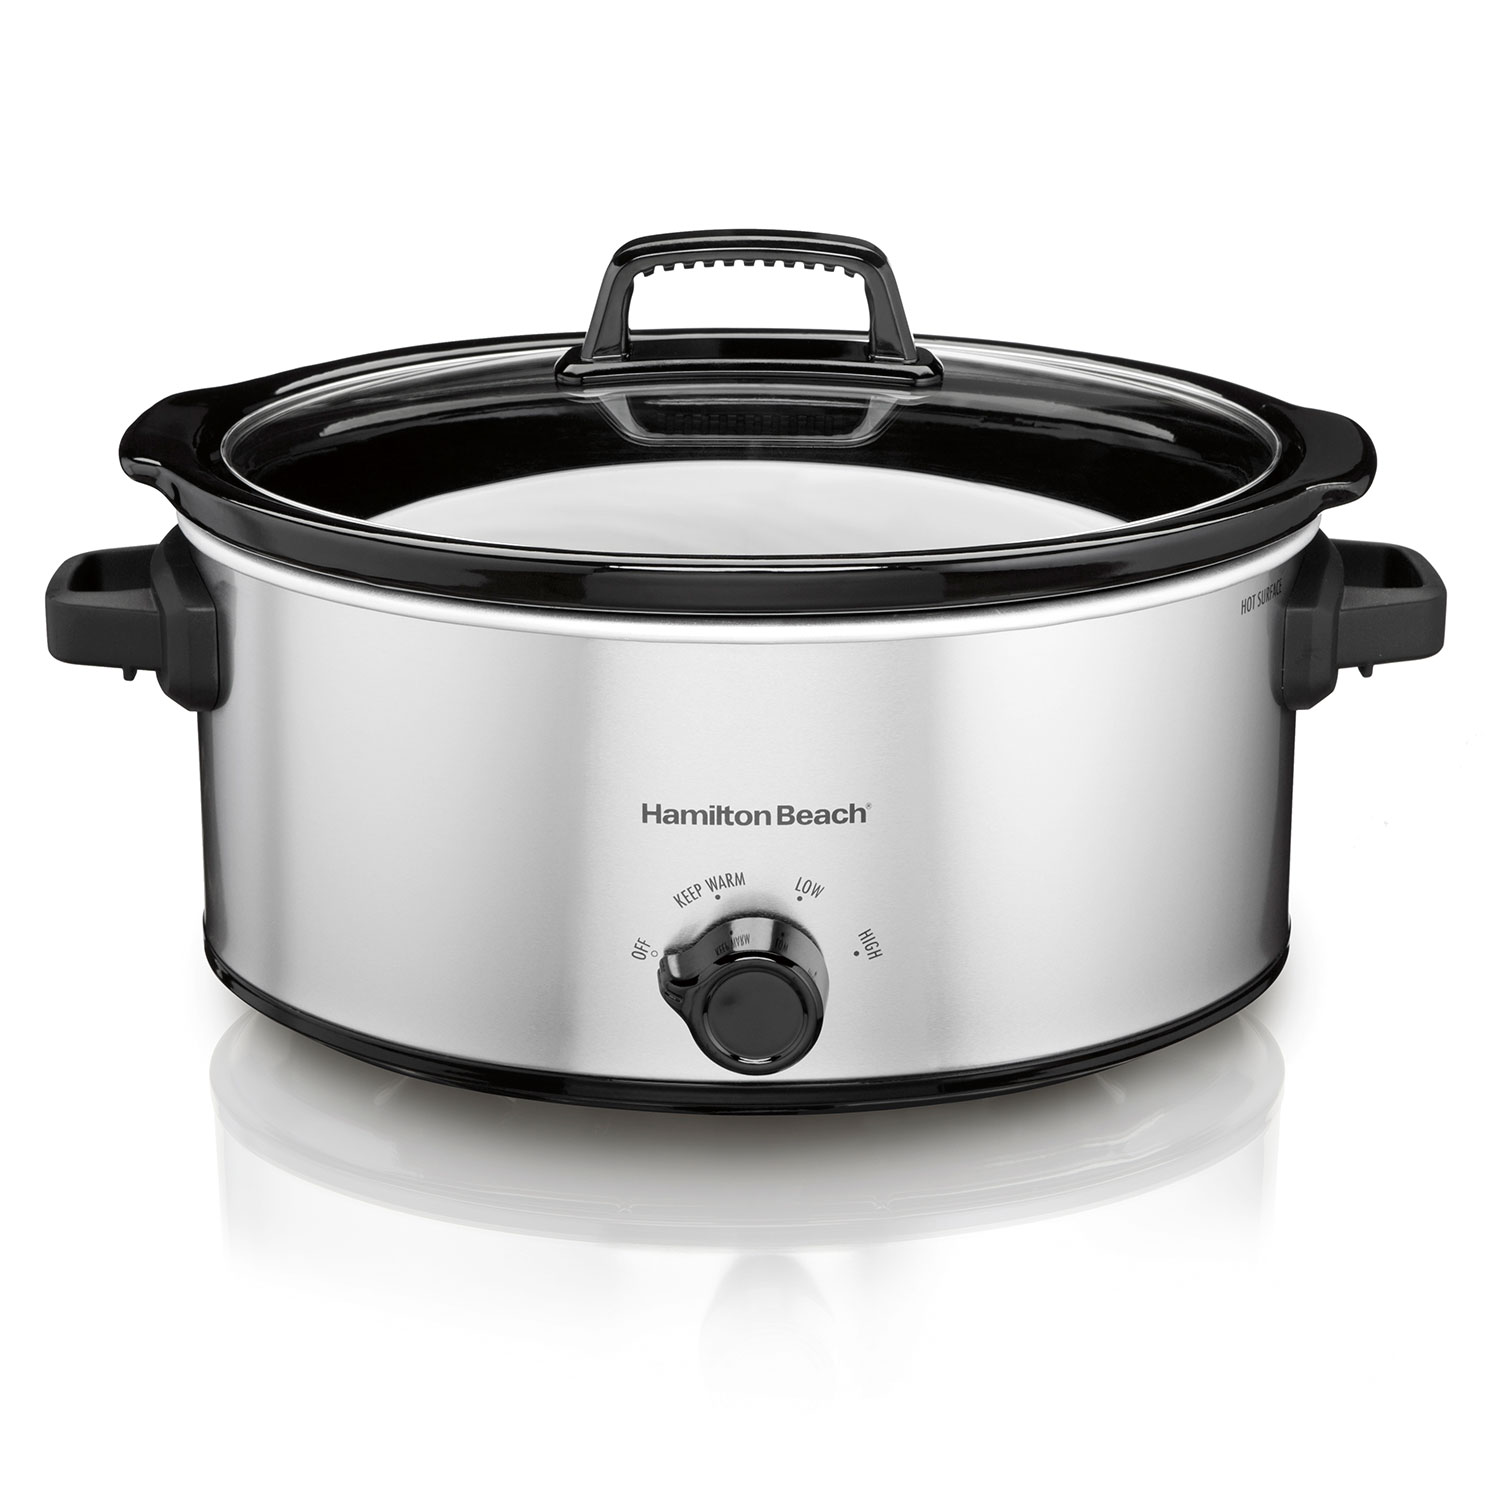 6 Quart Oval Slow Cooker (33665)